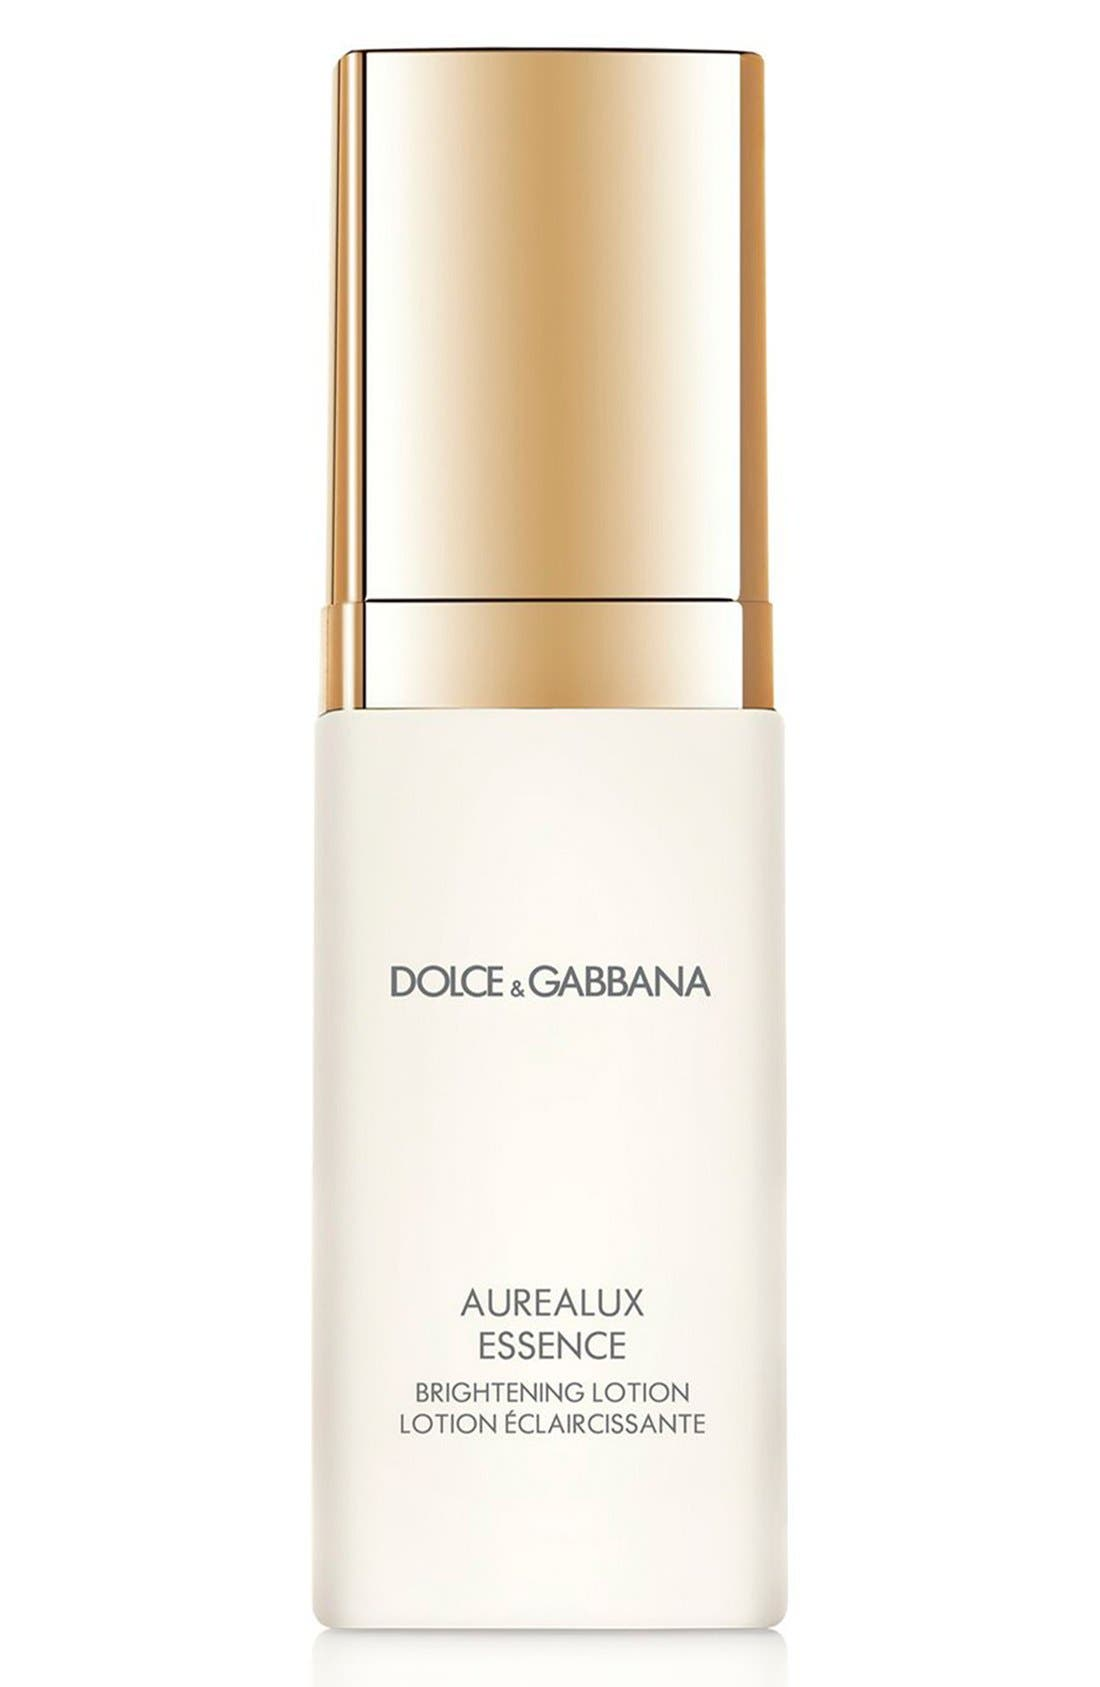 Dolce&Gabbana Beauty 'Aurealux' Essence Brightening Lotion,                             Main thumbnail 1, color,                             000